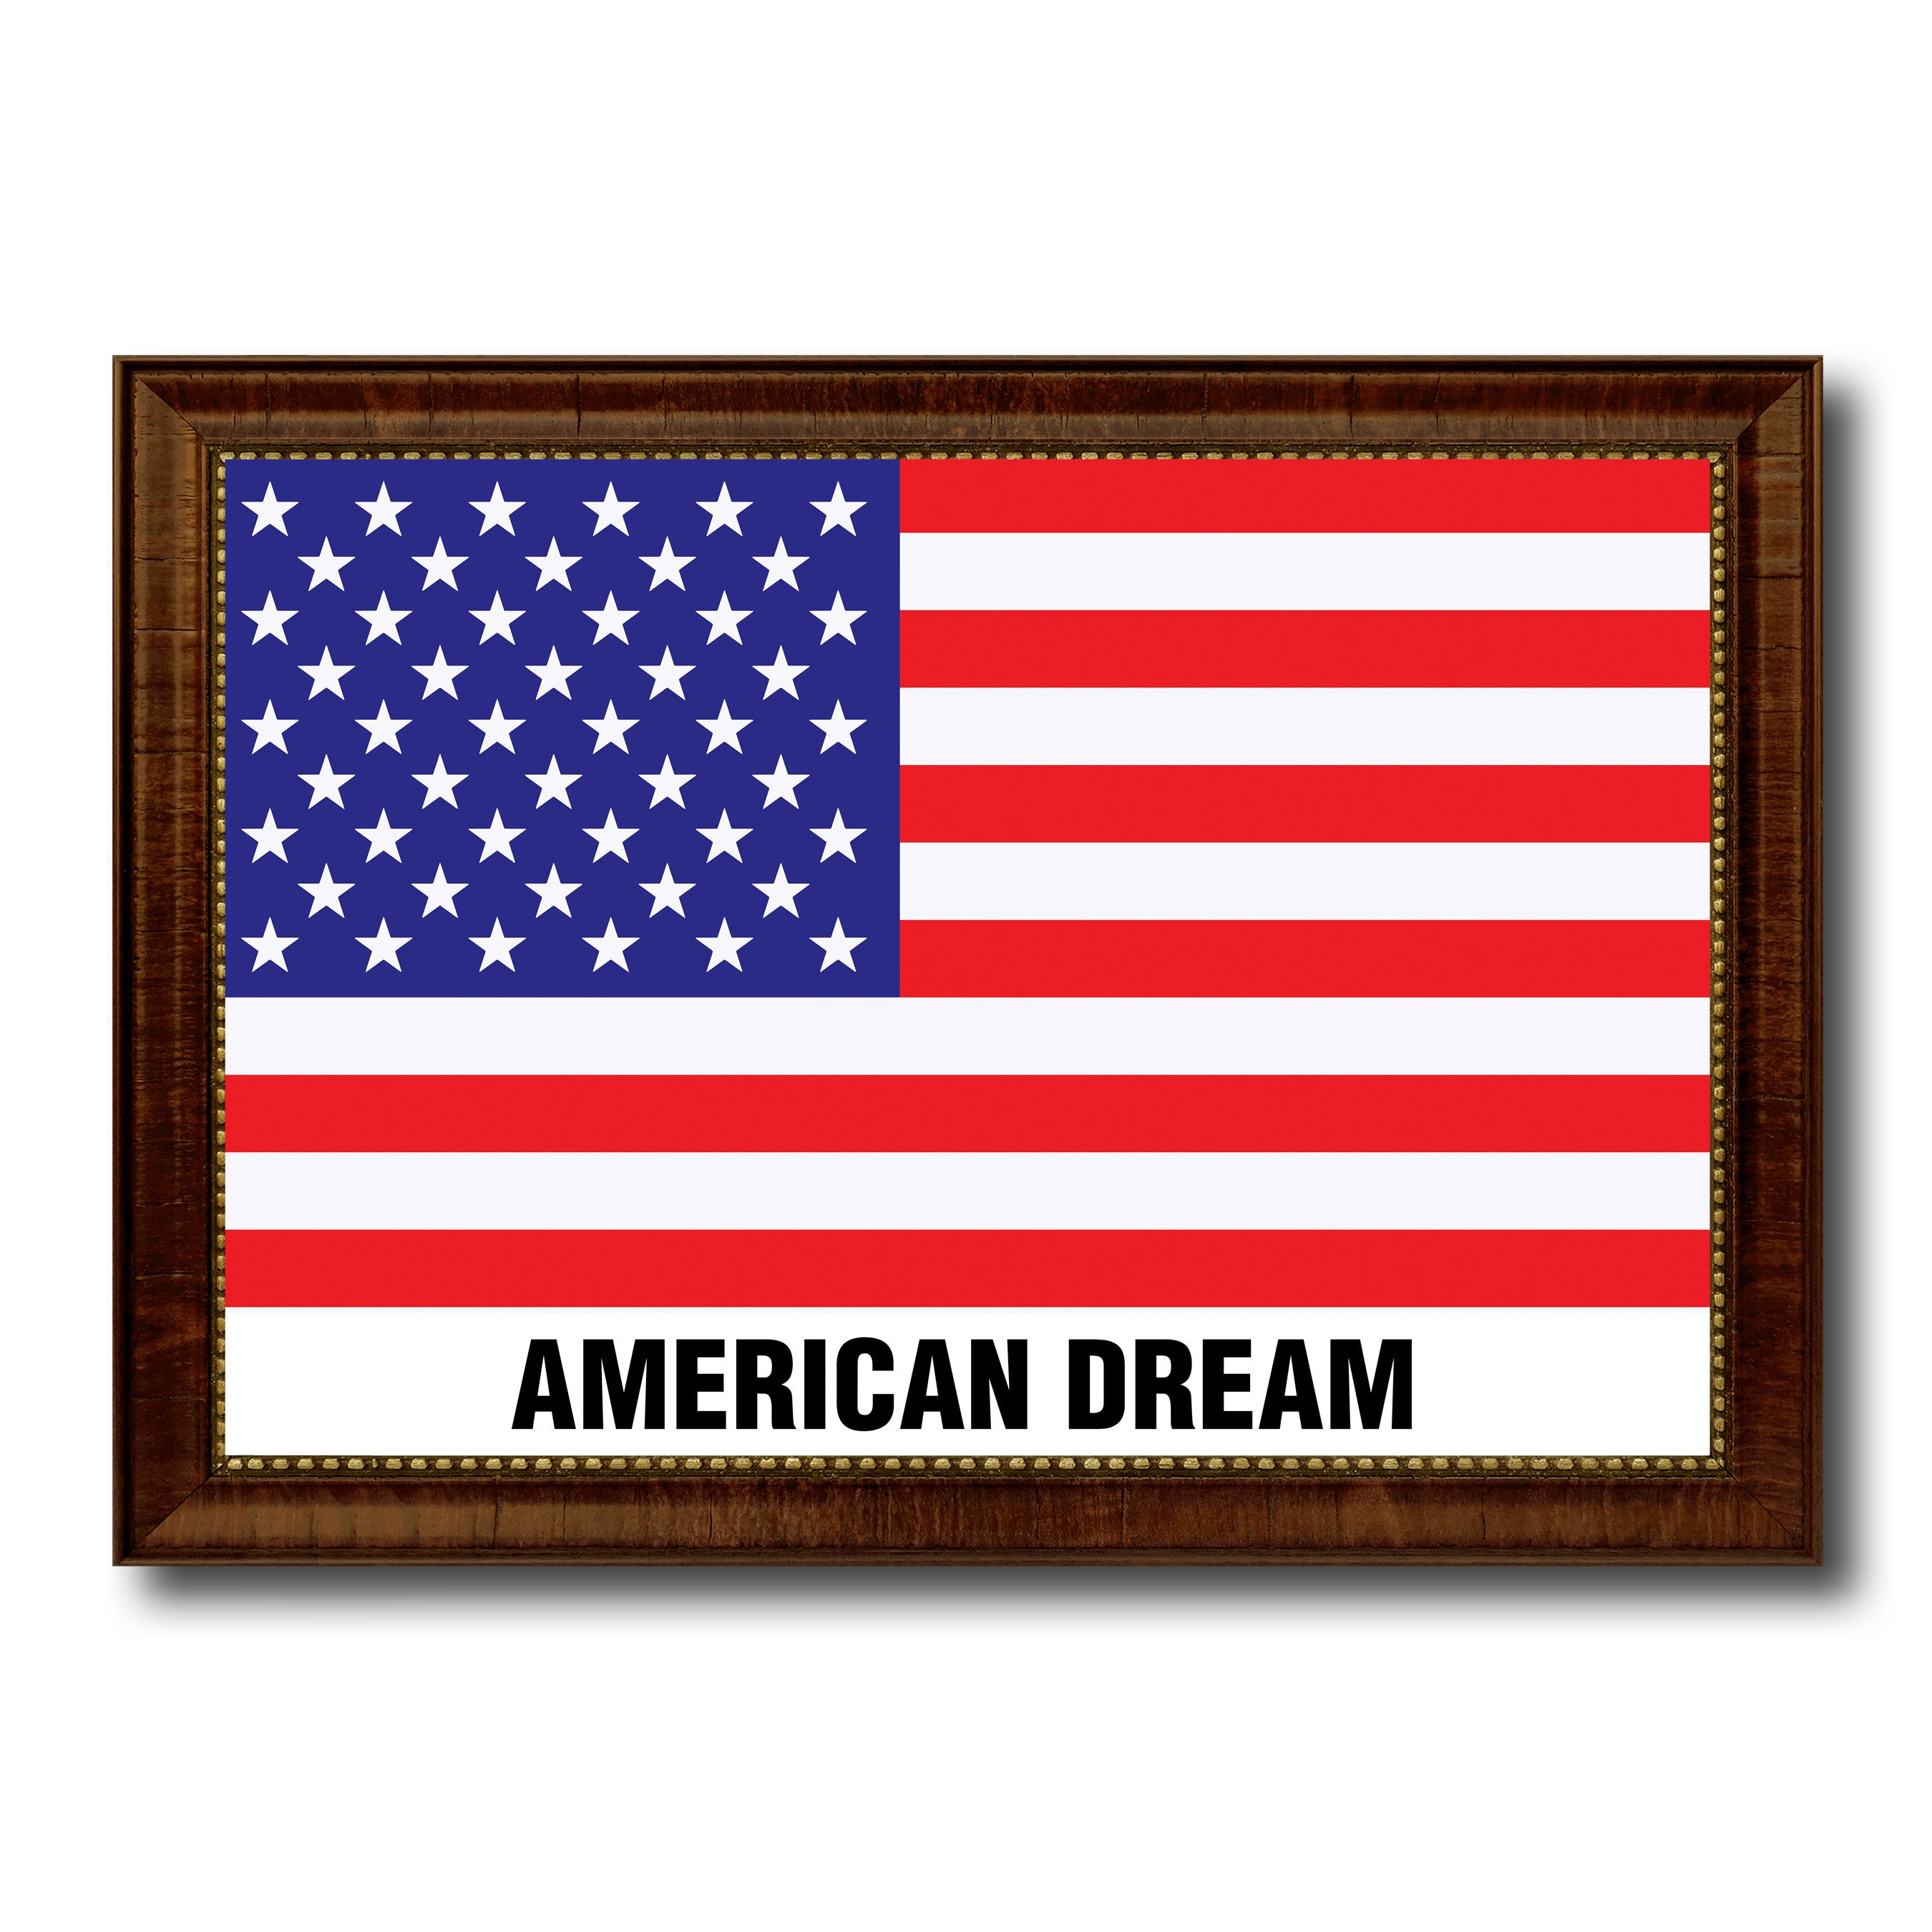 USA American Dream Flag Canvas Print with Brown Picture Frame Home Decor Wall Art Gift Ideas